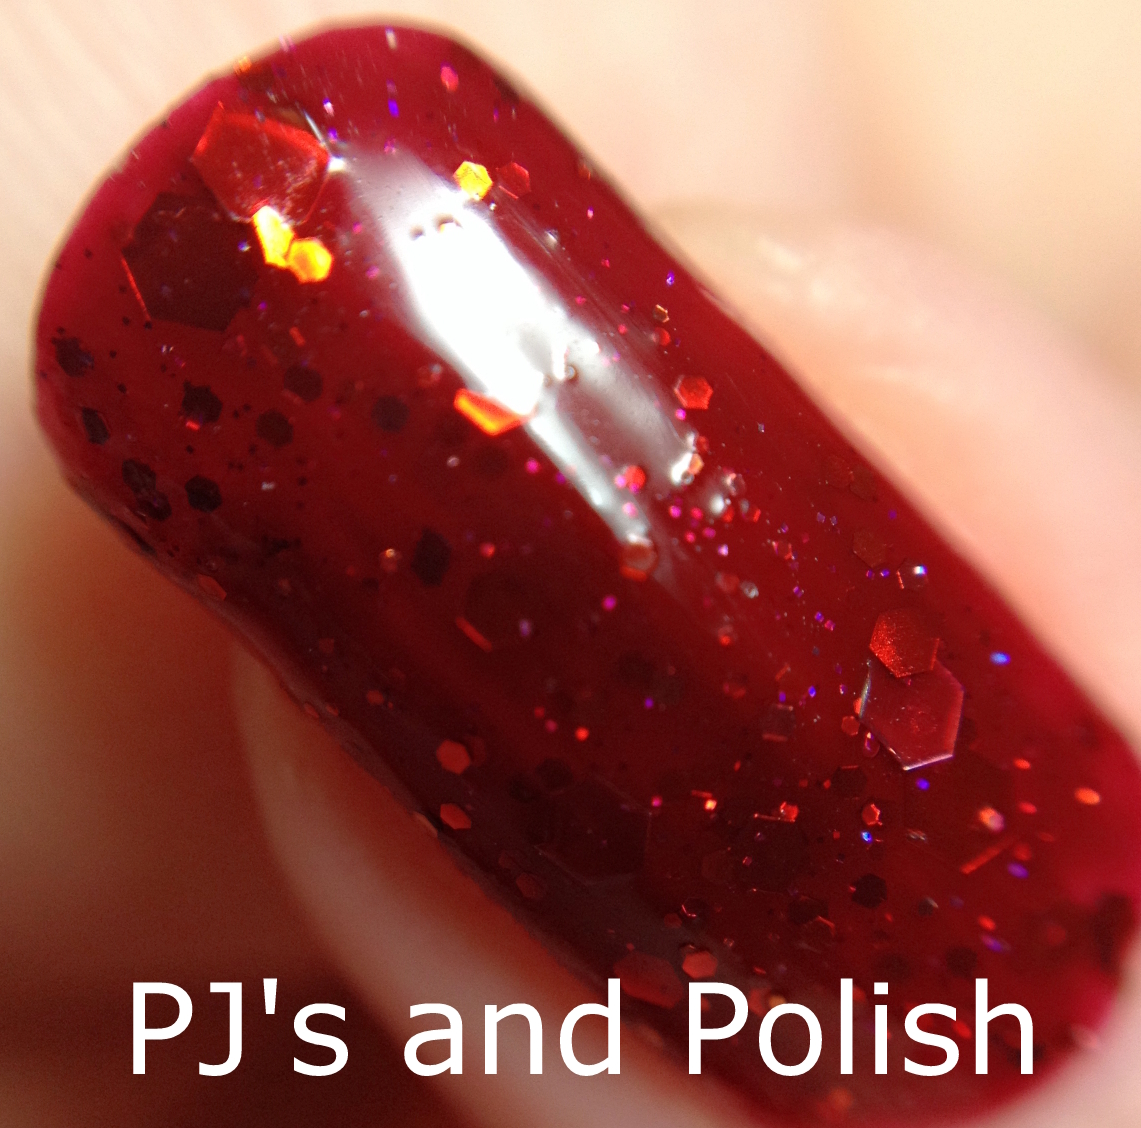 Swatch and Review KBShimmer Leaf of Faith Seche Vite Glitter Jelly